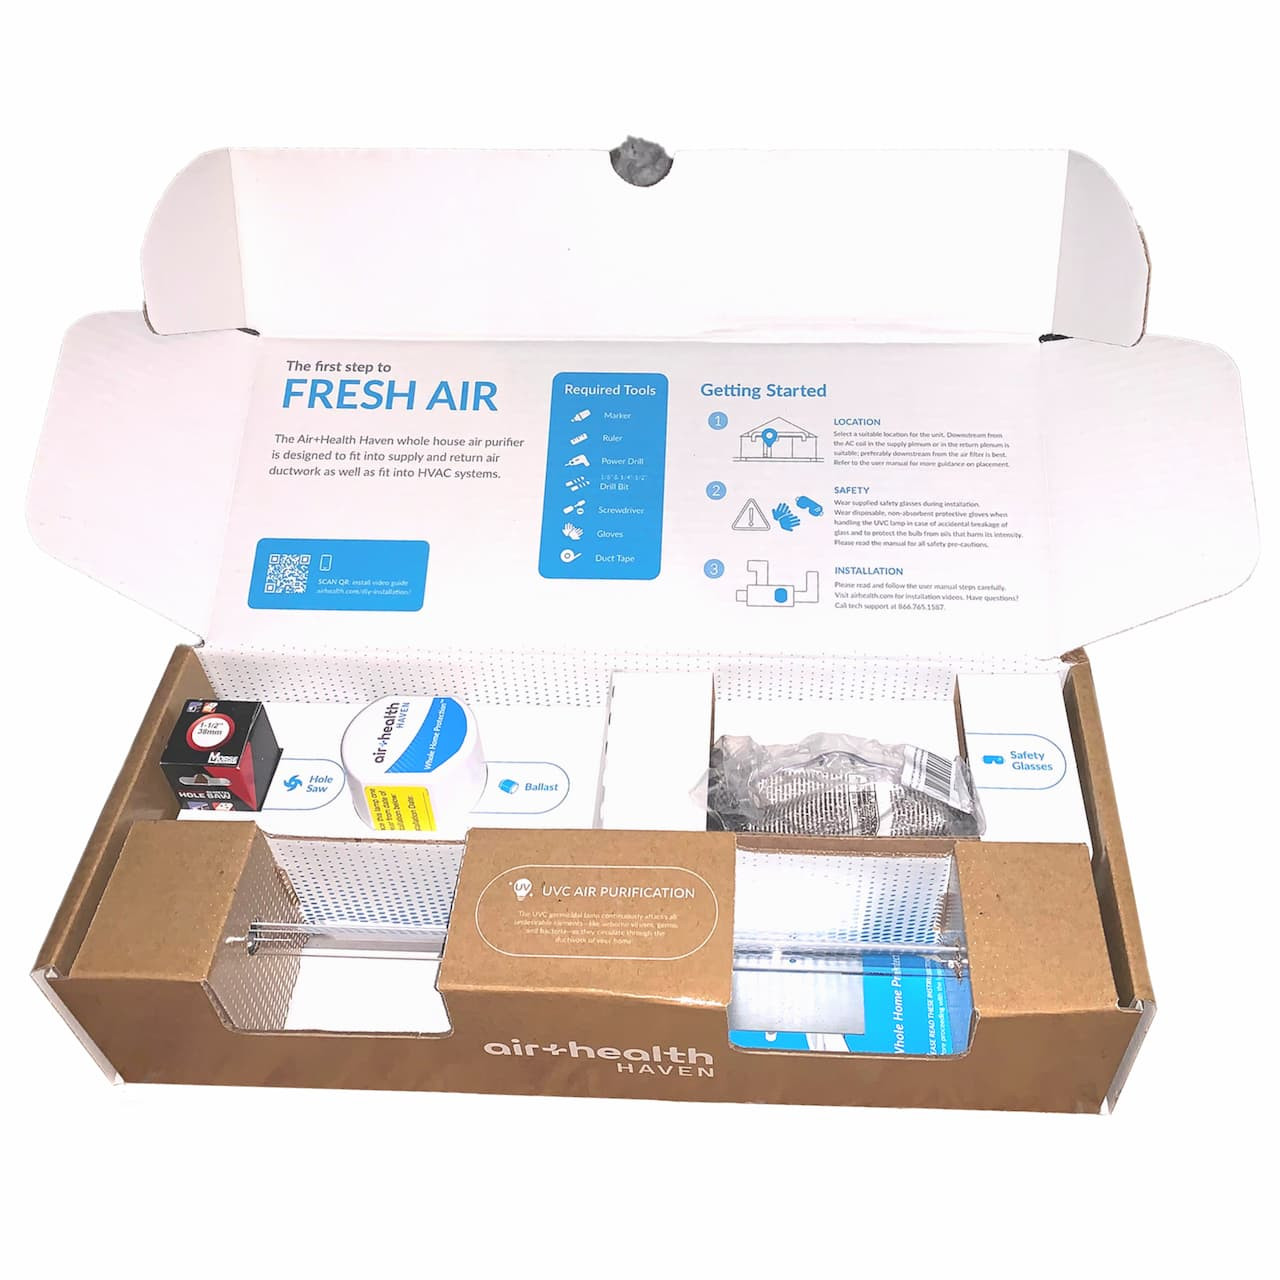 In Duct Air Purifier Packaging